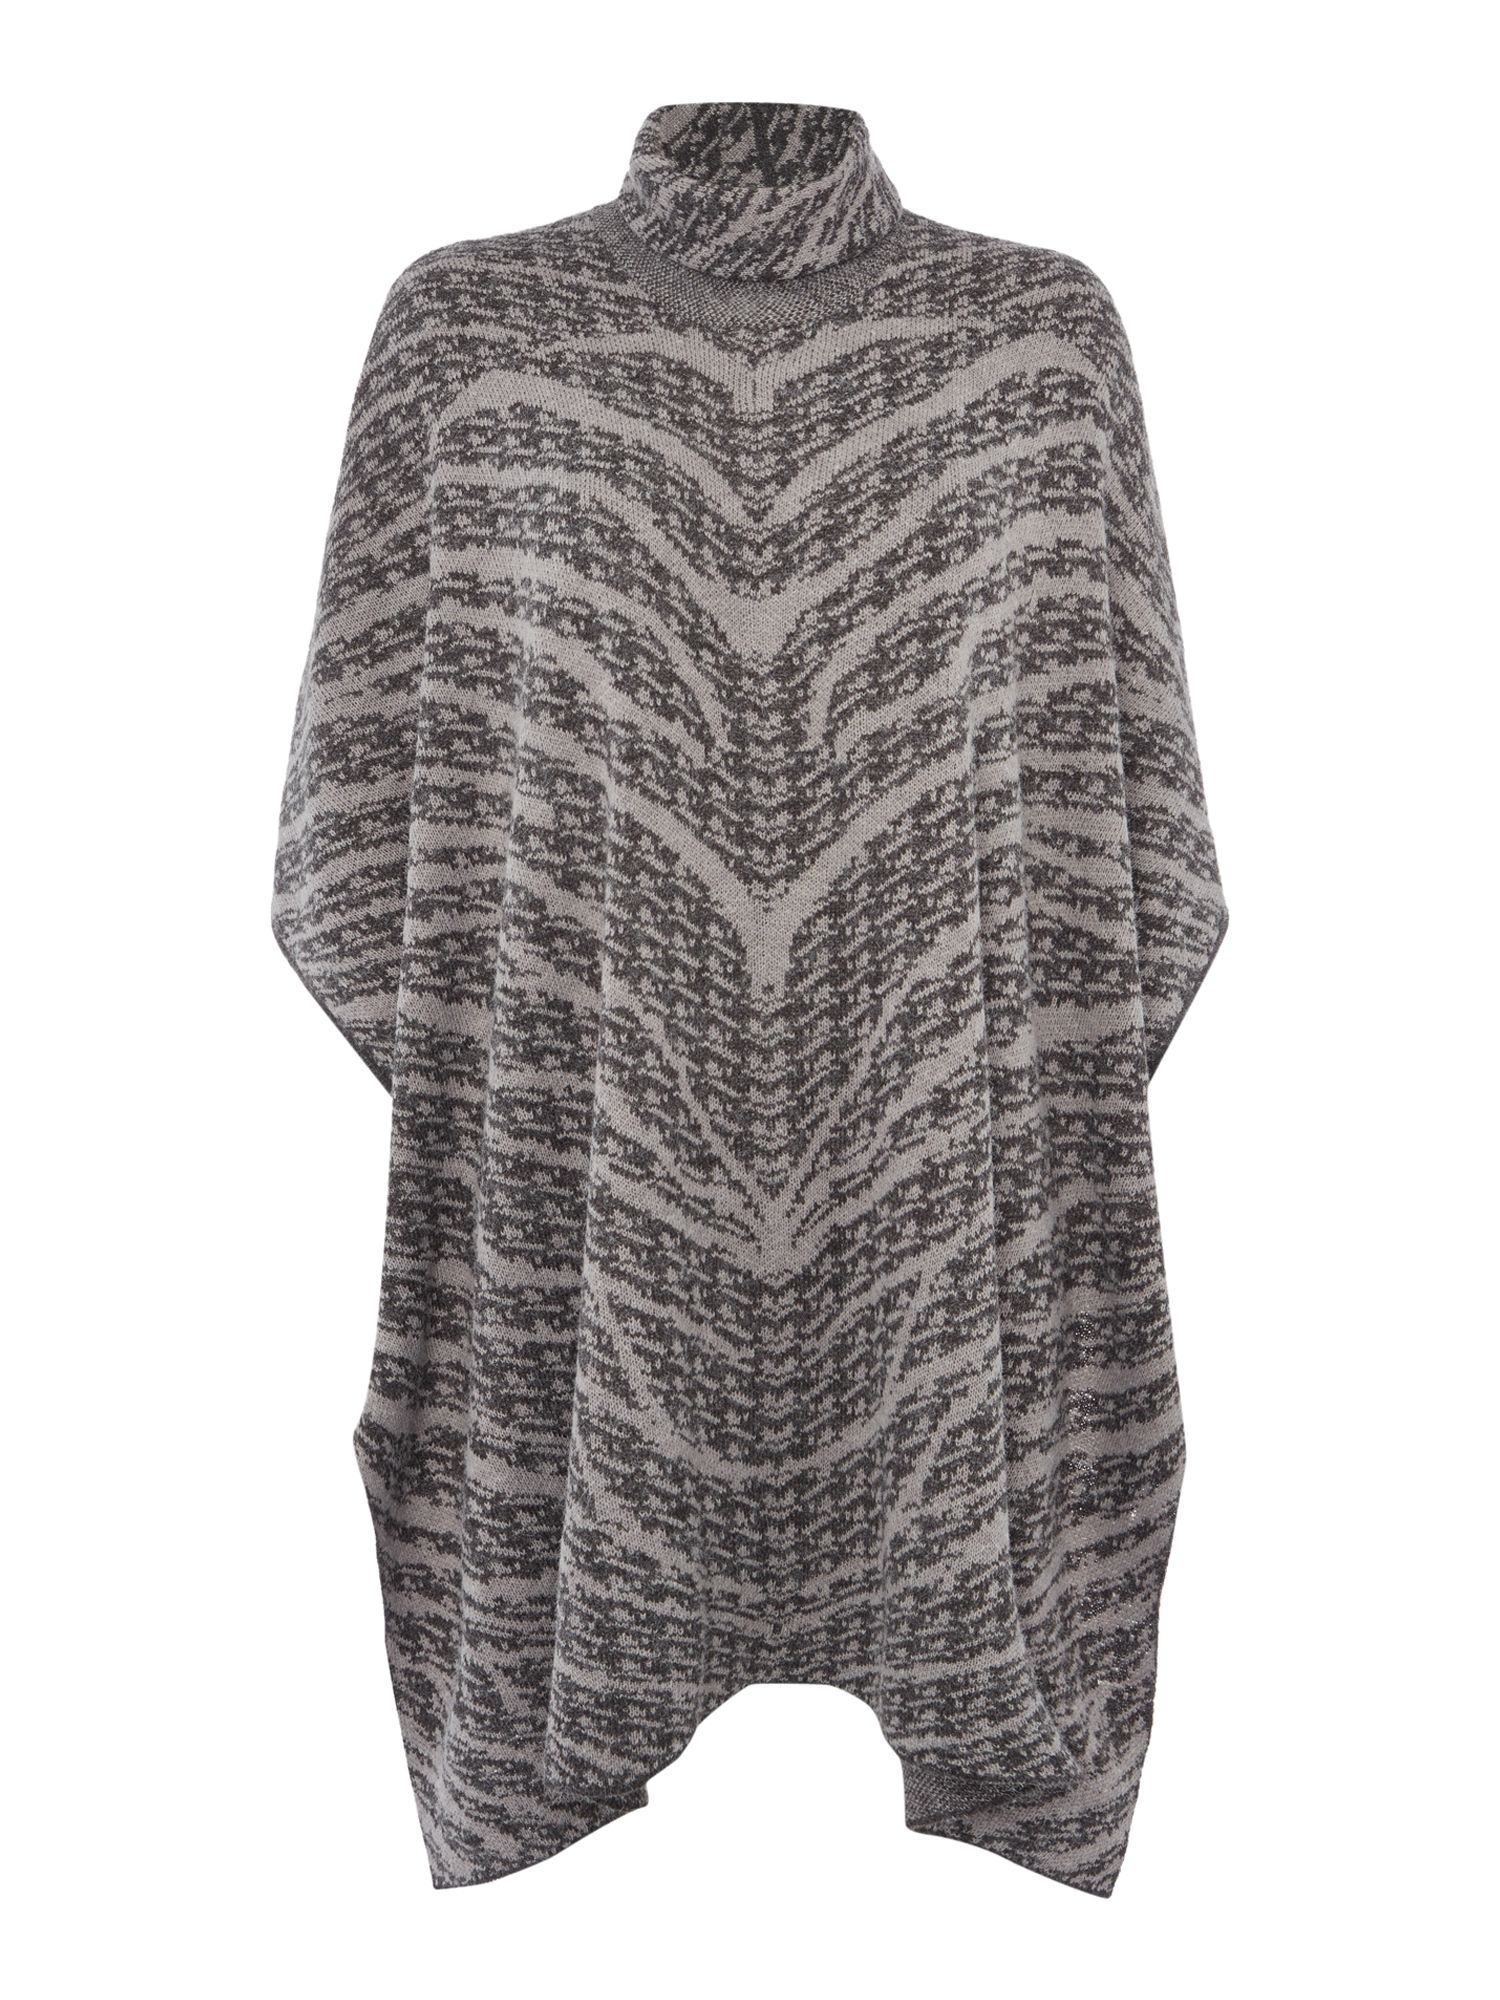 Gray & Willow Gray & Willow Marble jacquard poncho, Grey